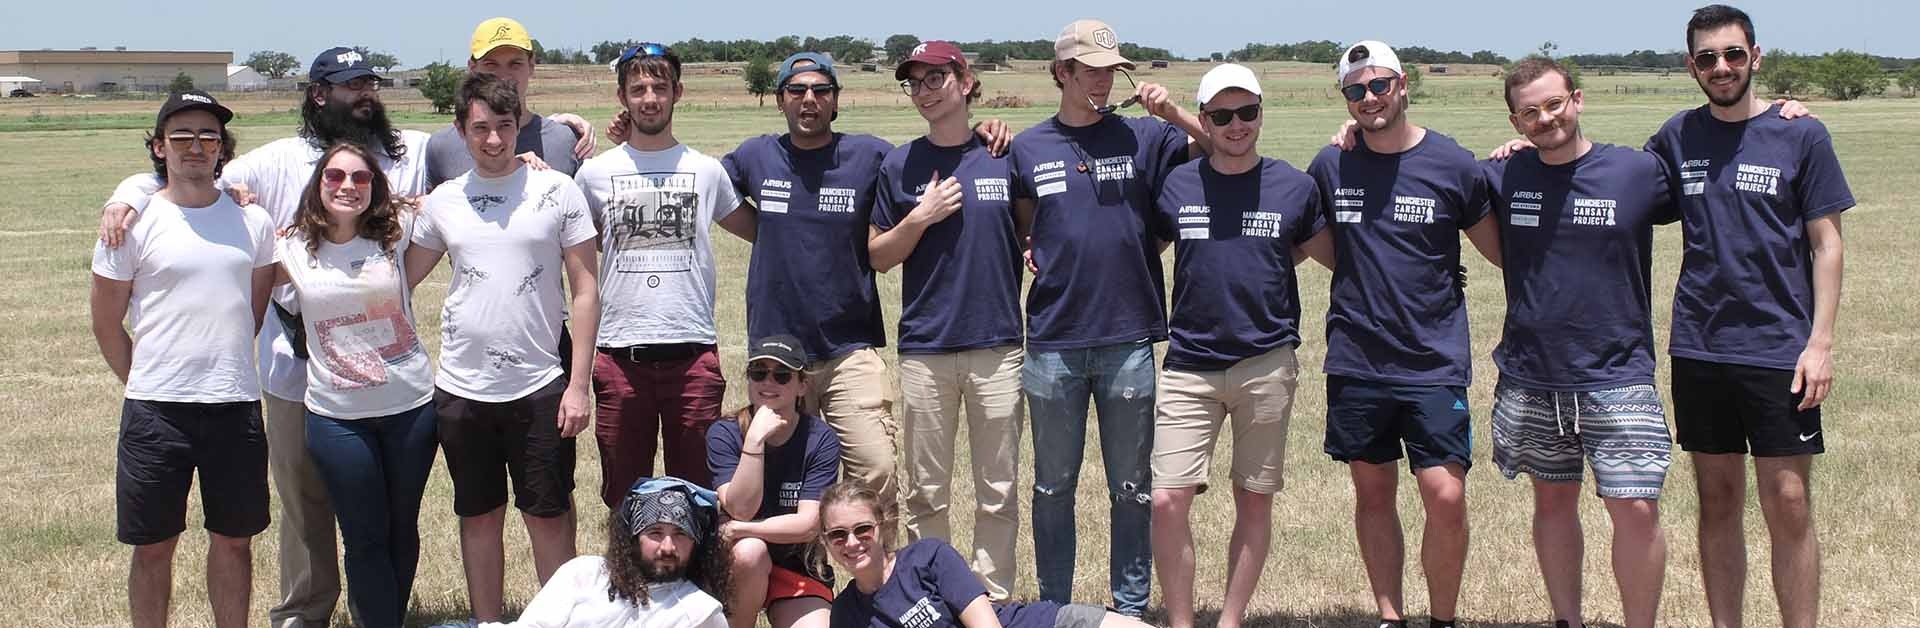 CanSat team in Texas